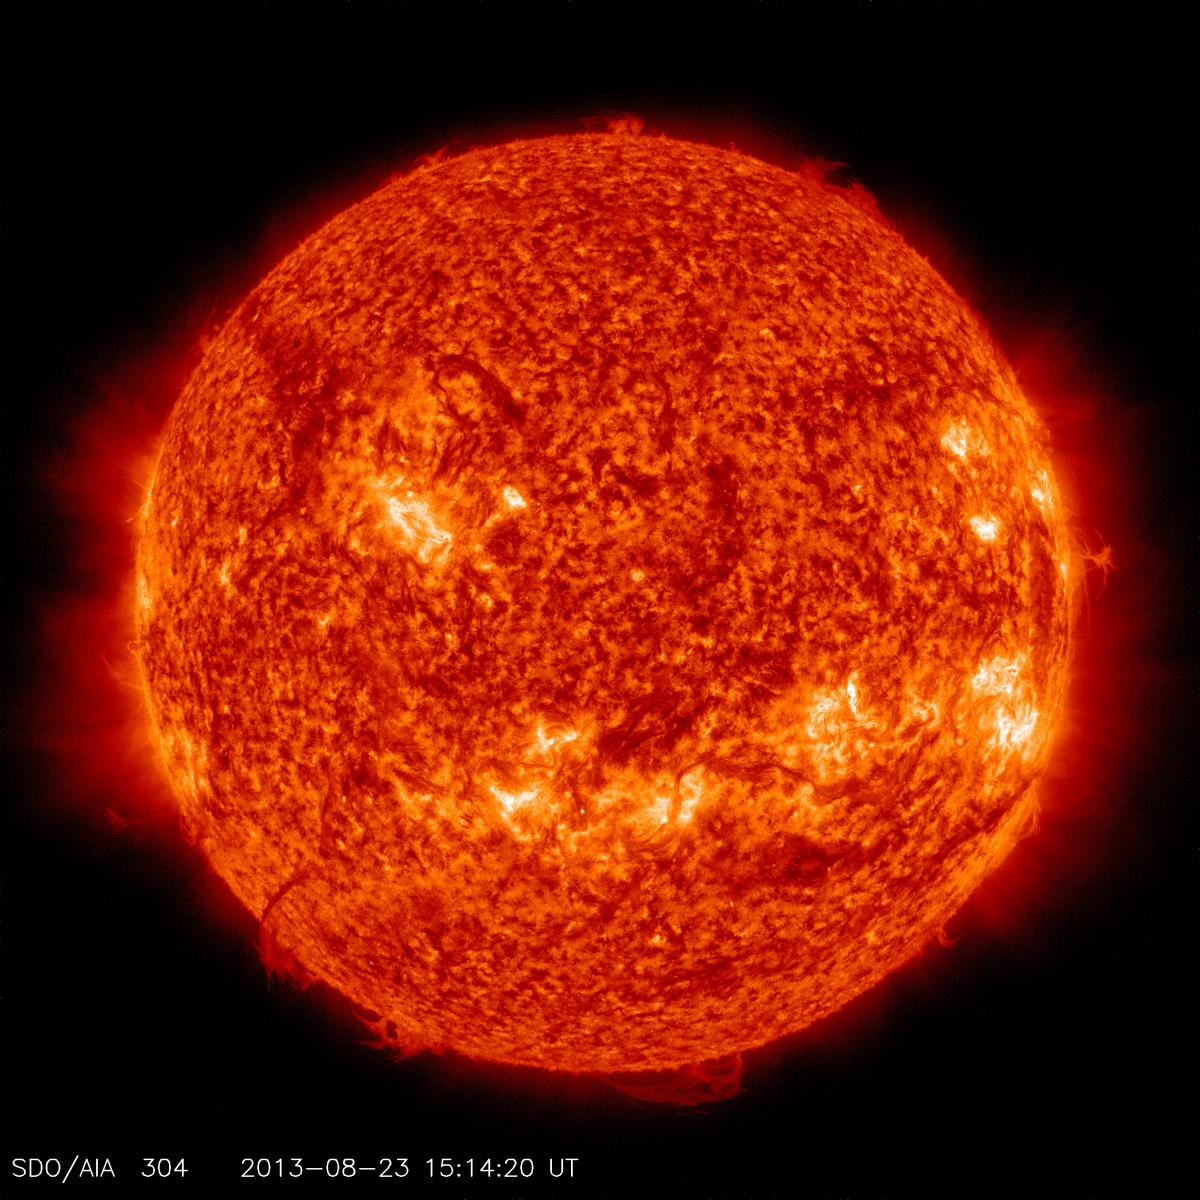 This channel is especially good at showing areas where cooler, dense plumes of plasma above the visible surface of the sun are located. Many of these features either can't be seen or appear as dark lines in the other channels. The bright areas show places